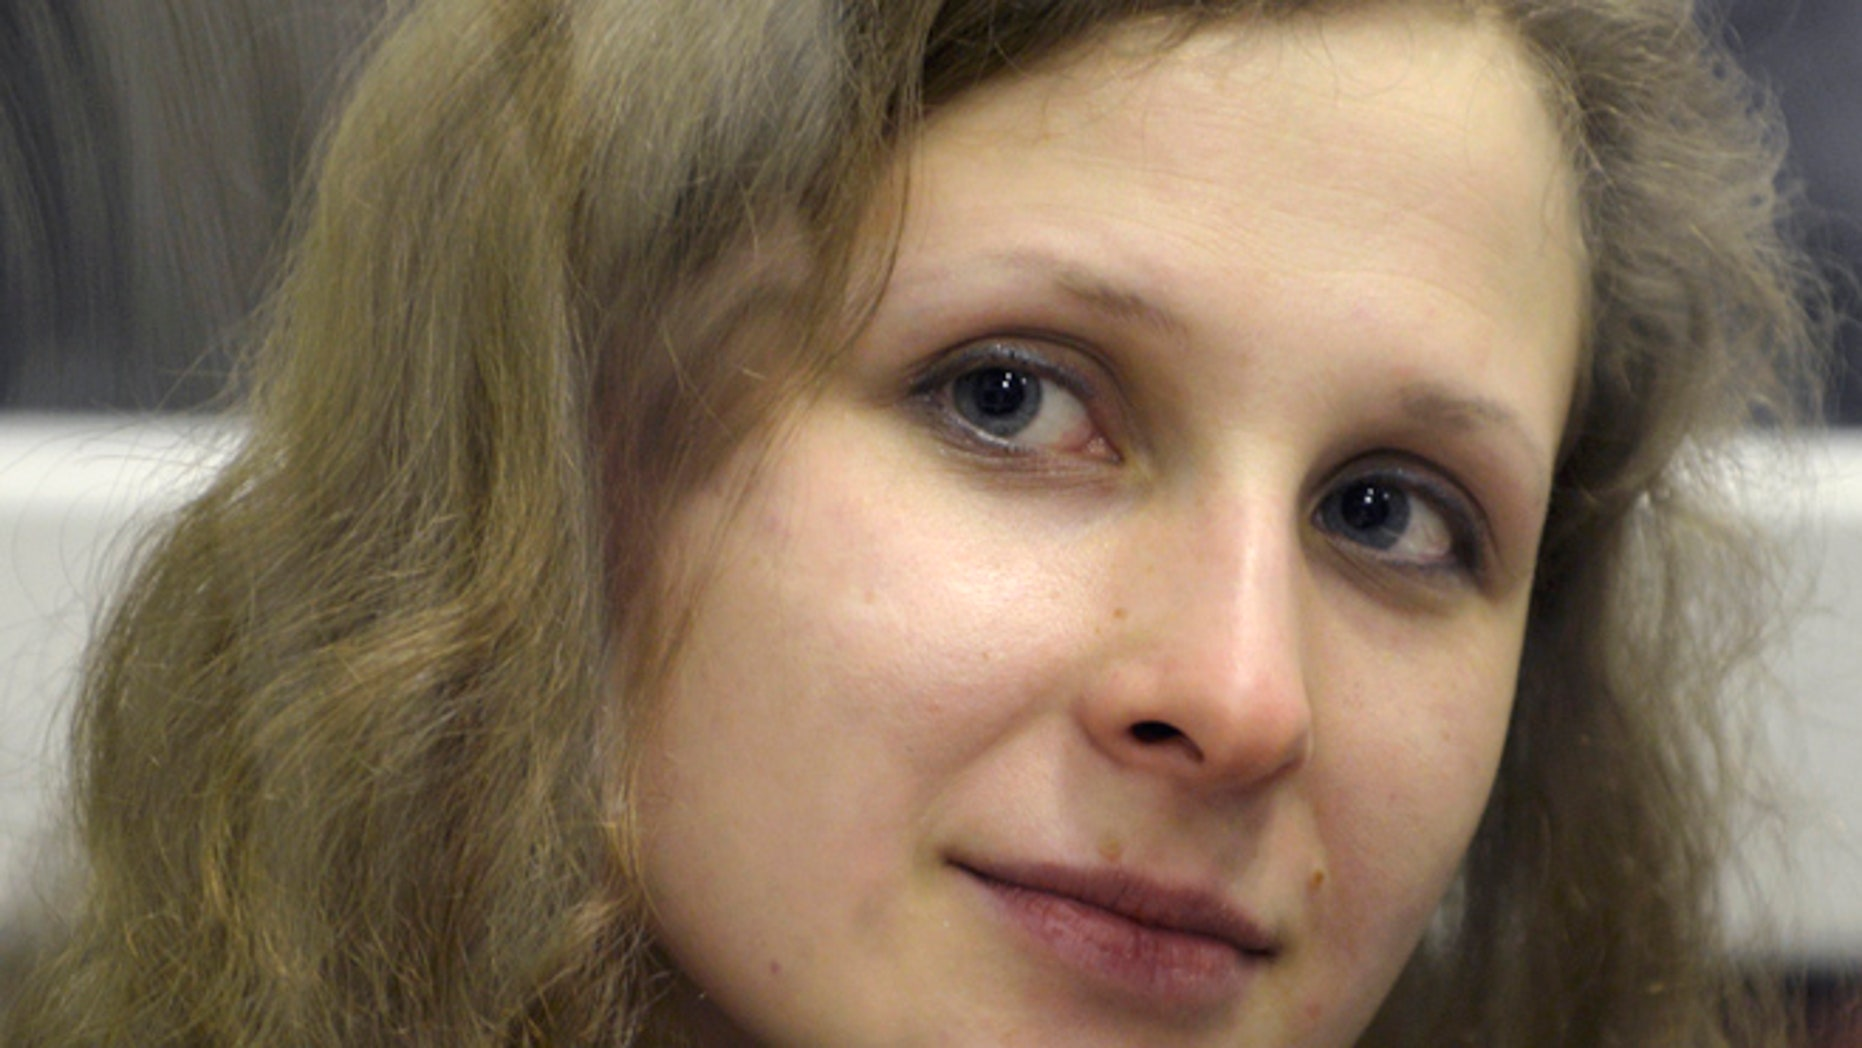 In this Jan. 16, 2013 file photo, jailed feminist punk band Pussy Riot member Maria Alekhina is in a defendant's cage in a court room in the town of Berezniki, north-east of Moscow, Russia. A Russian activist says that Alekhina has ended her 11-day hunger strike June 1, 2013,  after prison authorities met her demands.